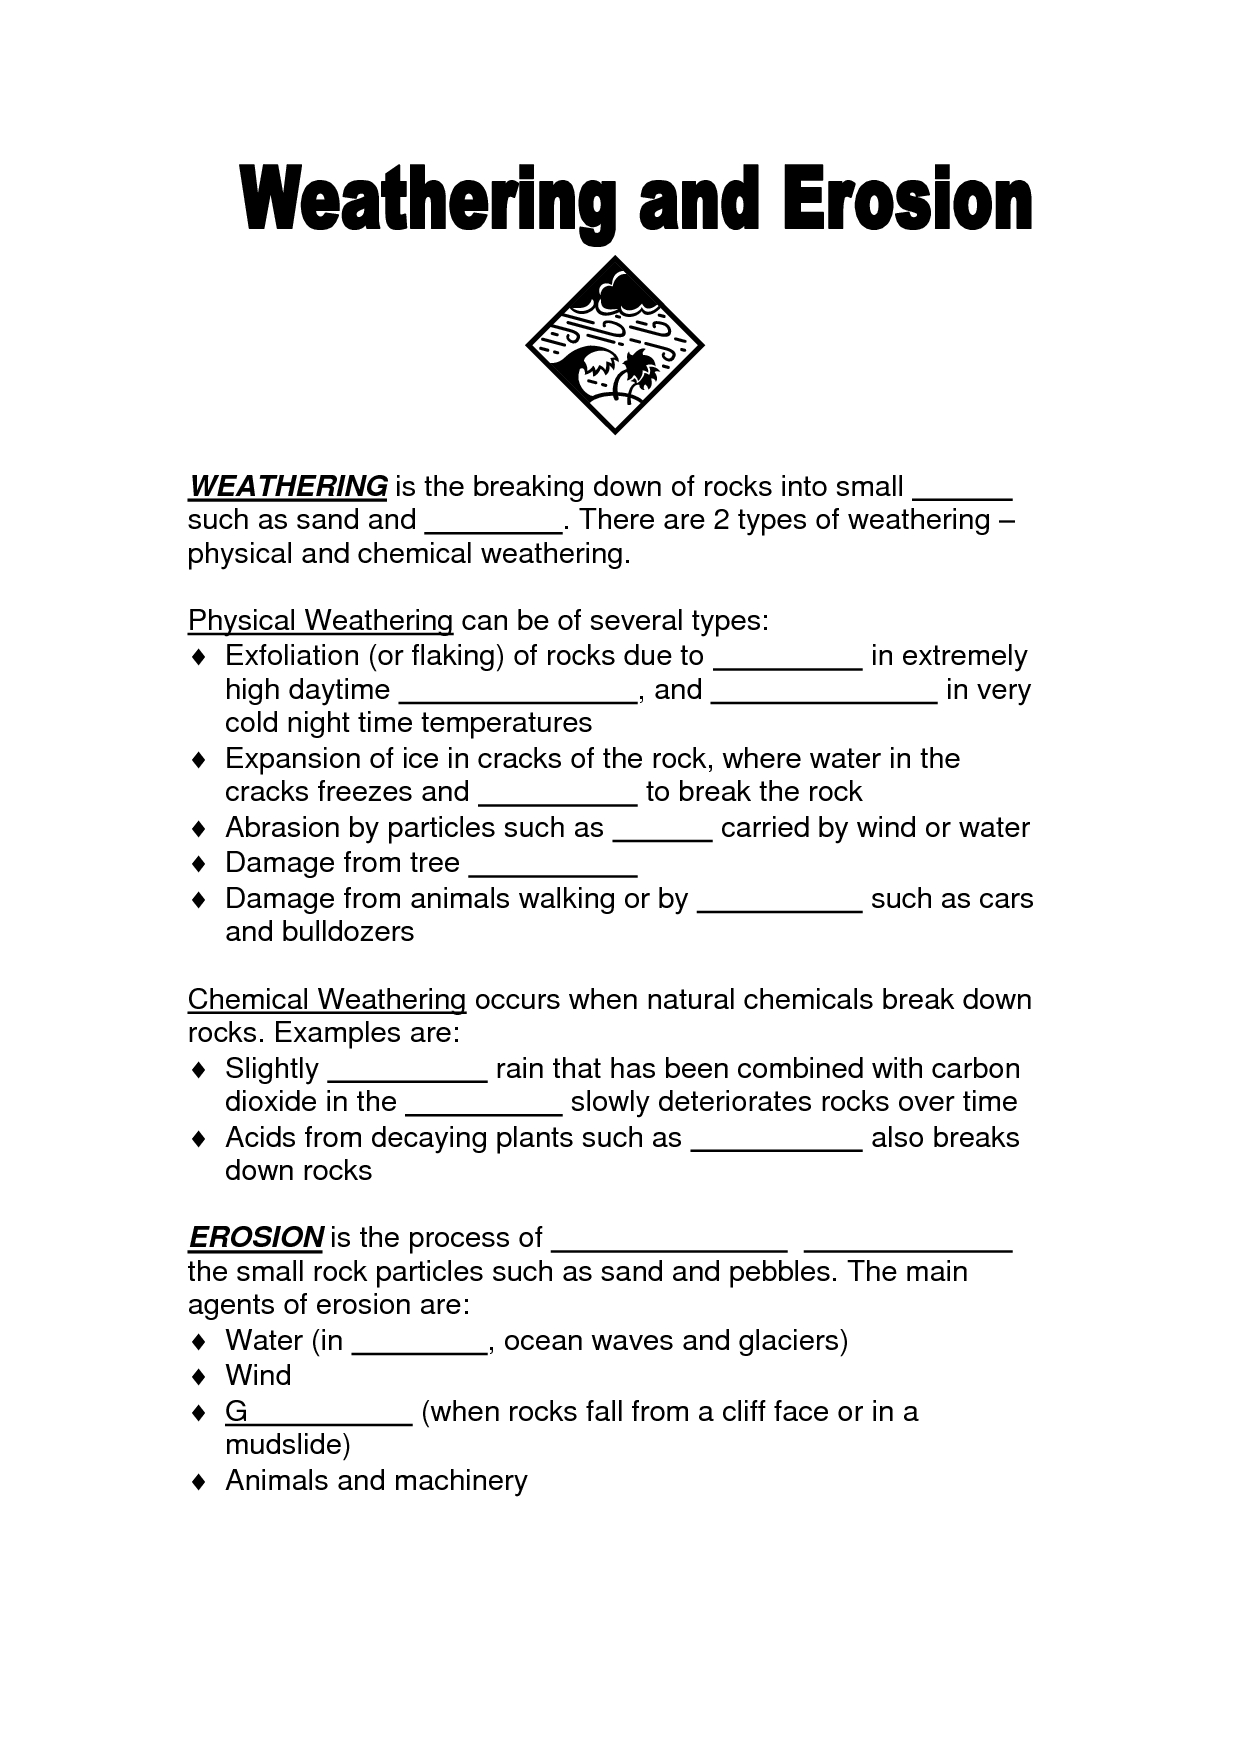 Best Images Of Weathering And Erosion Worksheet